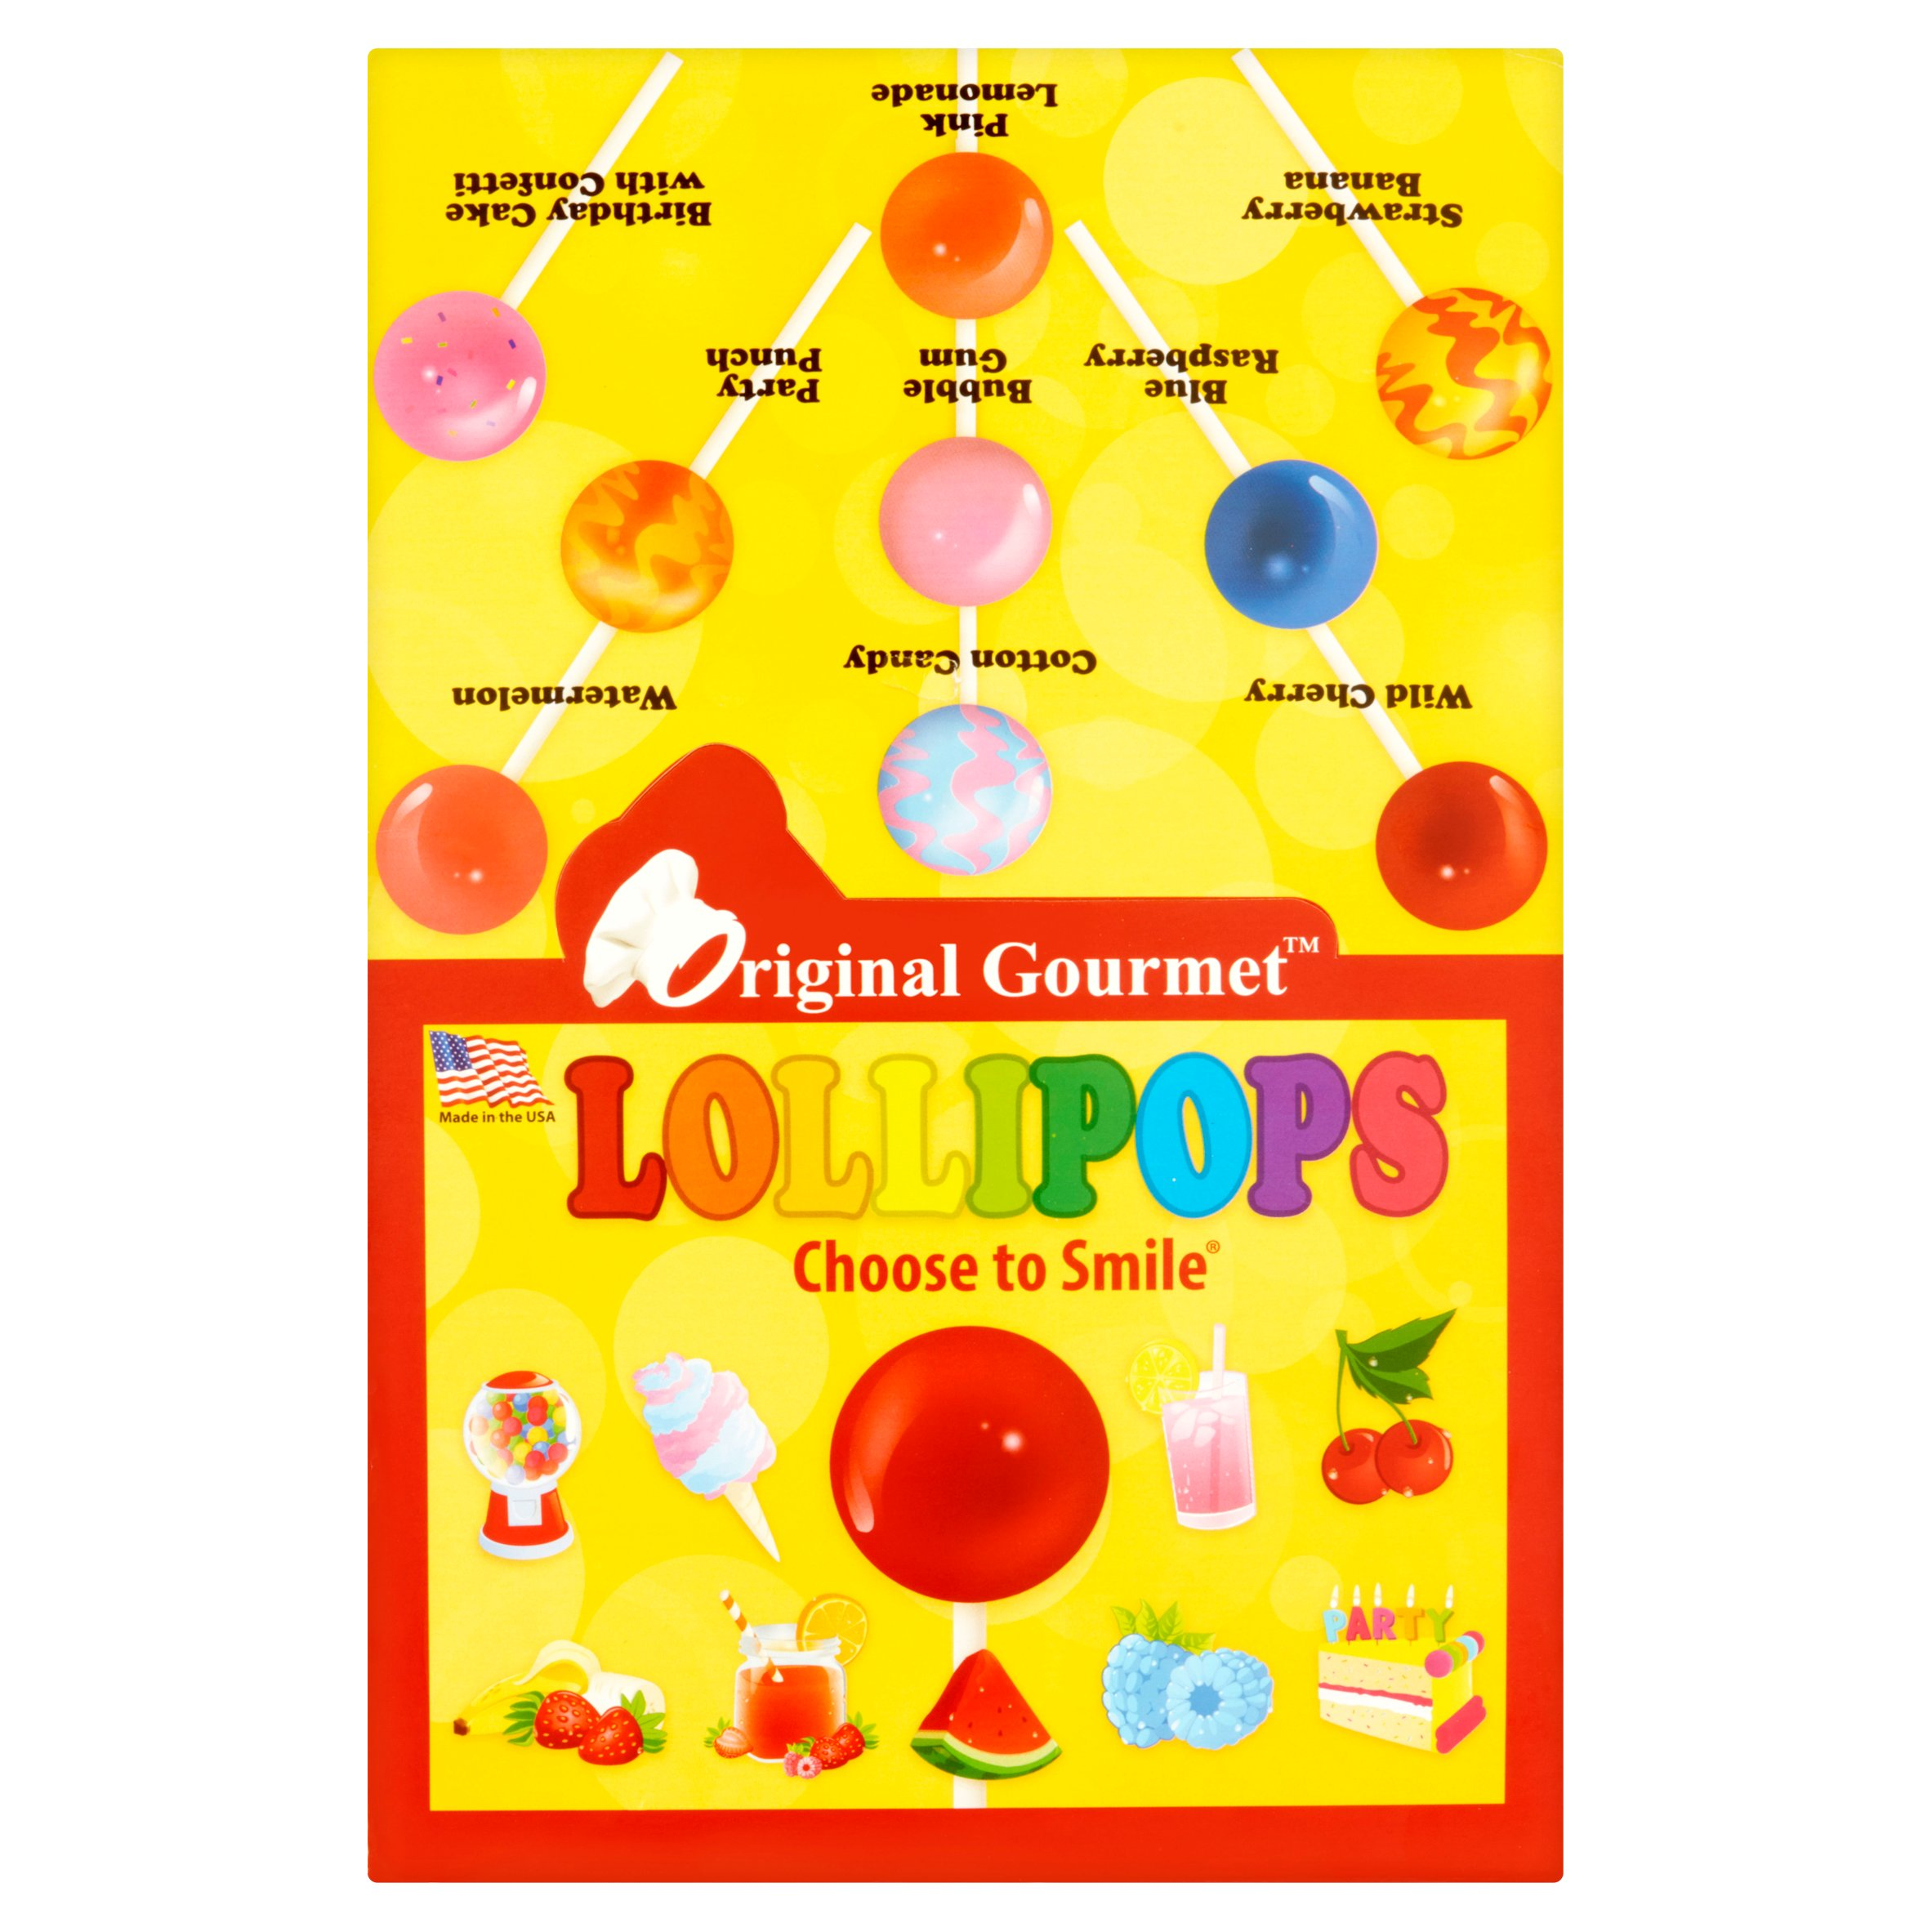 Original Gourmet Original Lollipops, 1.1 oz, 48 count